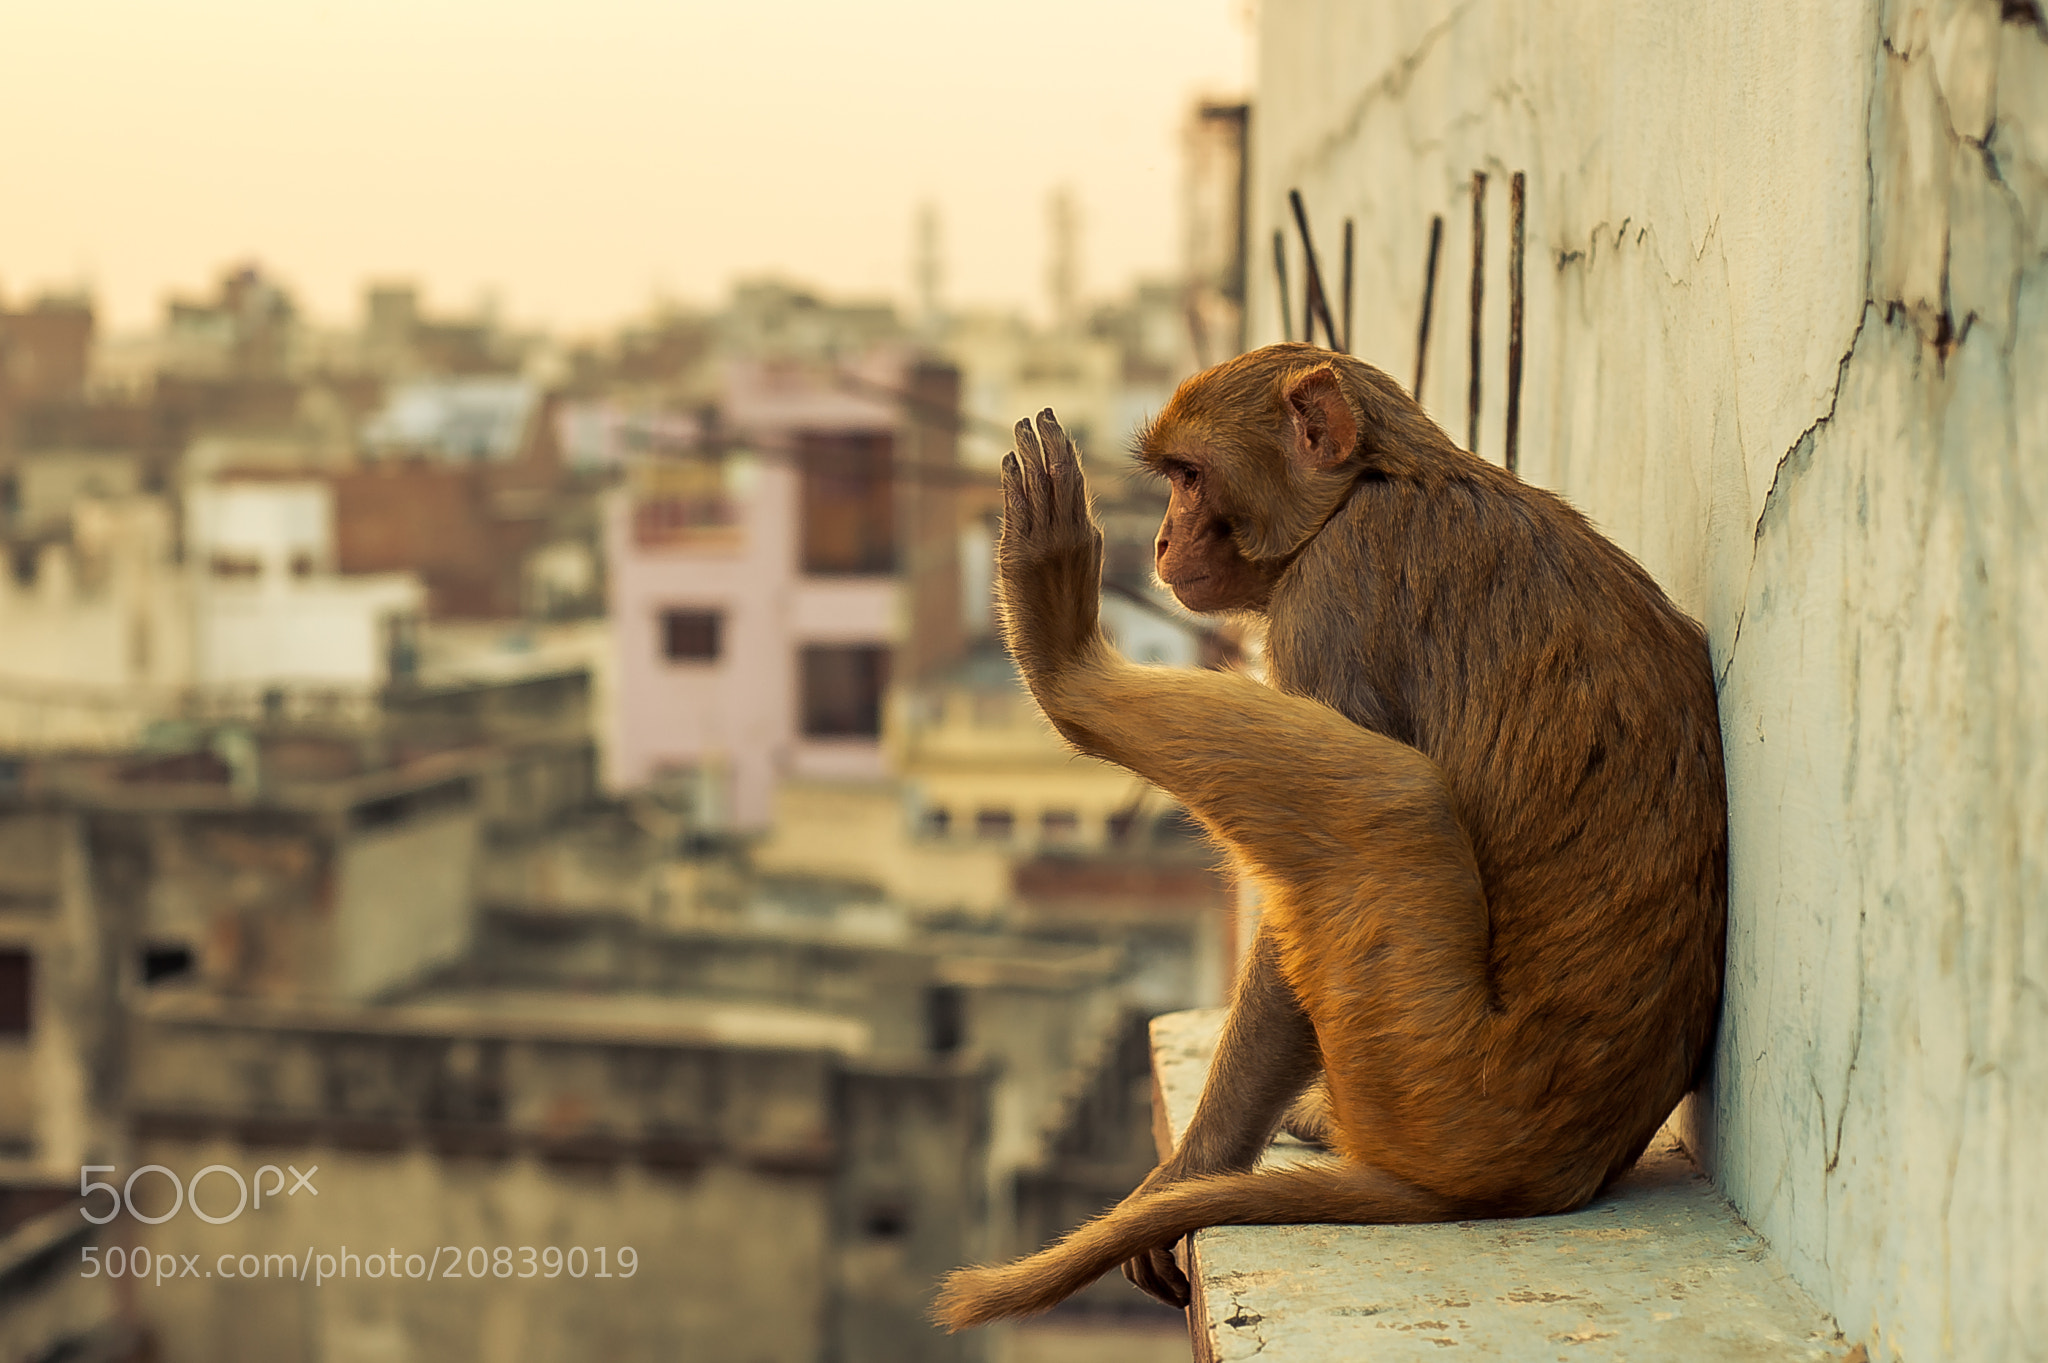 Photograph Hello! Monkey by Seonghwan Jo on 500px